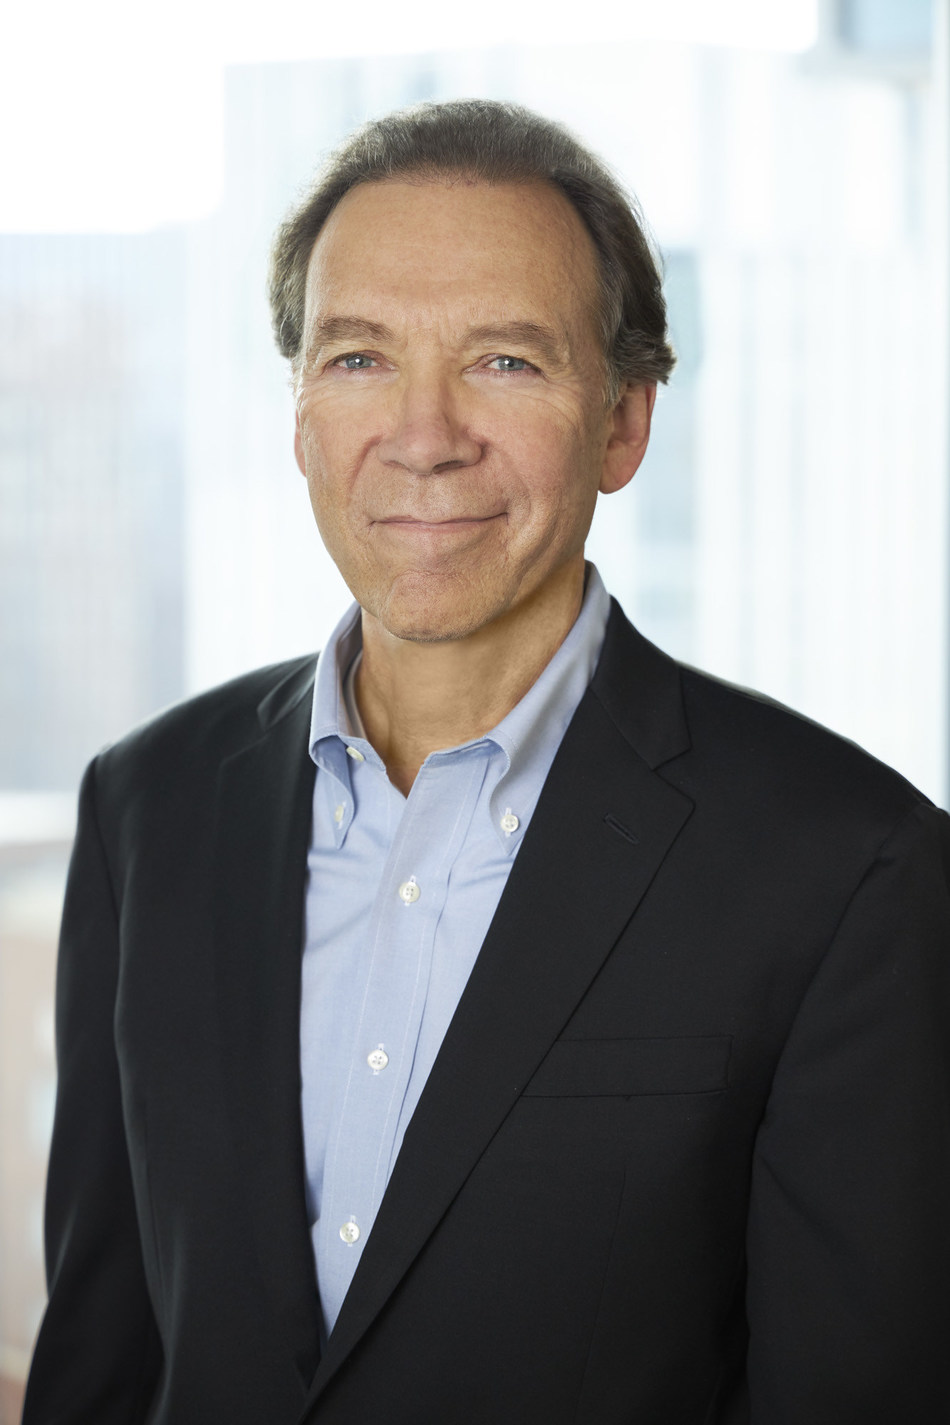 The Akamai board of directors has appointed current director Daniel R. Hesse to succeed Fred Salerno as chairman.